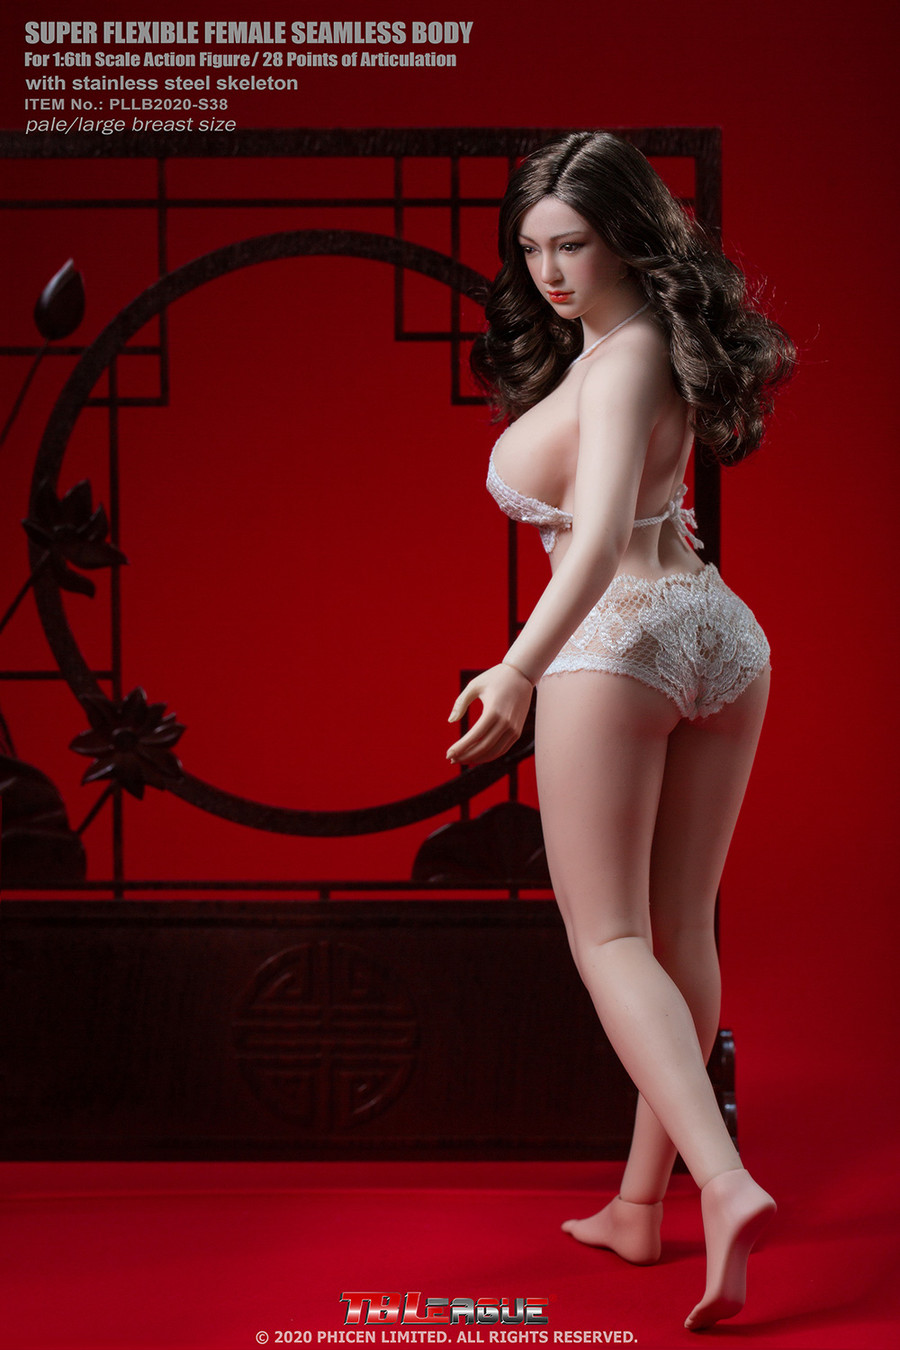 TBLeague - Female Super-Flexible Seamless Body with Head - Large Bust Body in Pale S38